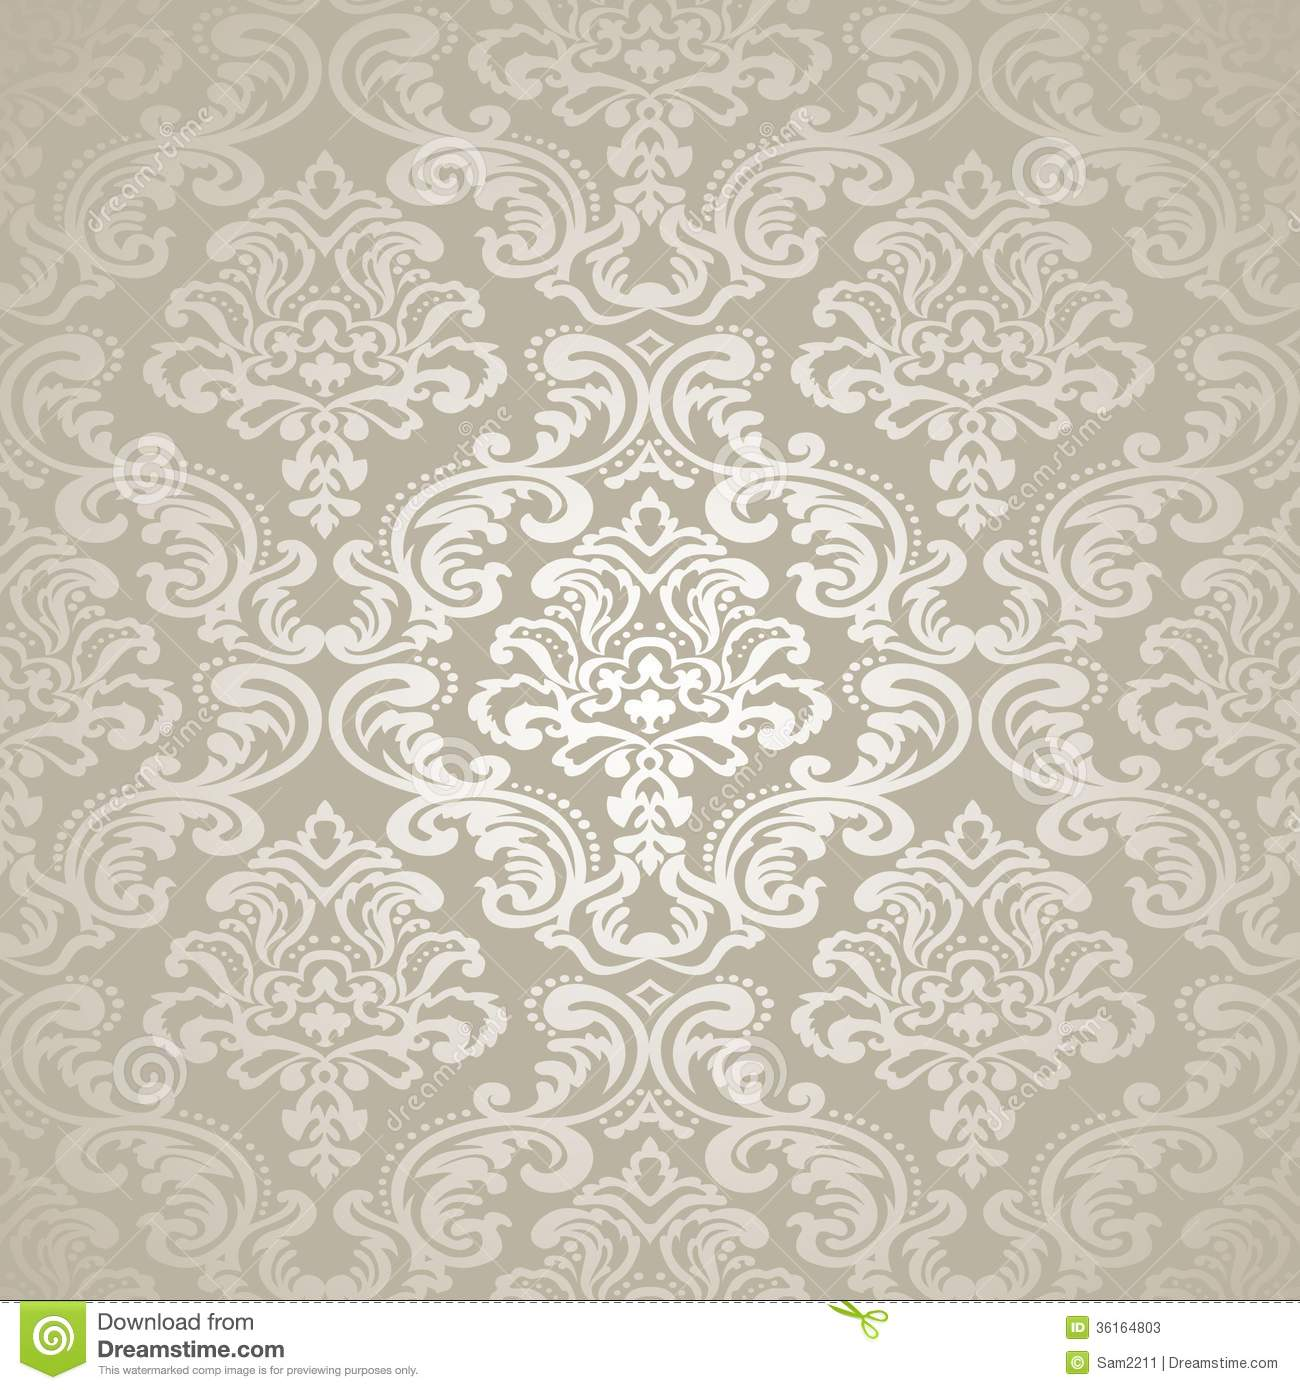 Damask Vintage Floral Seamless Pattern Background. Stock ...